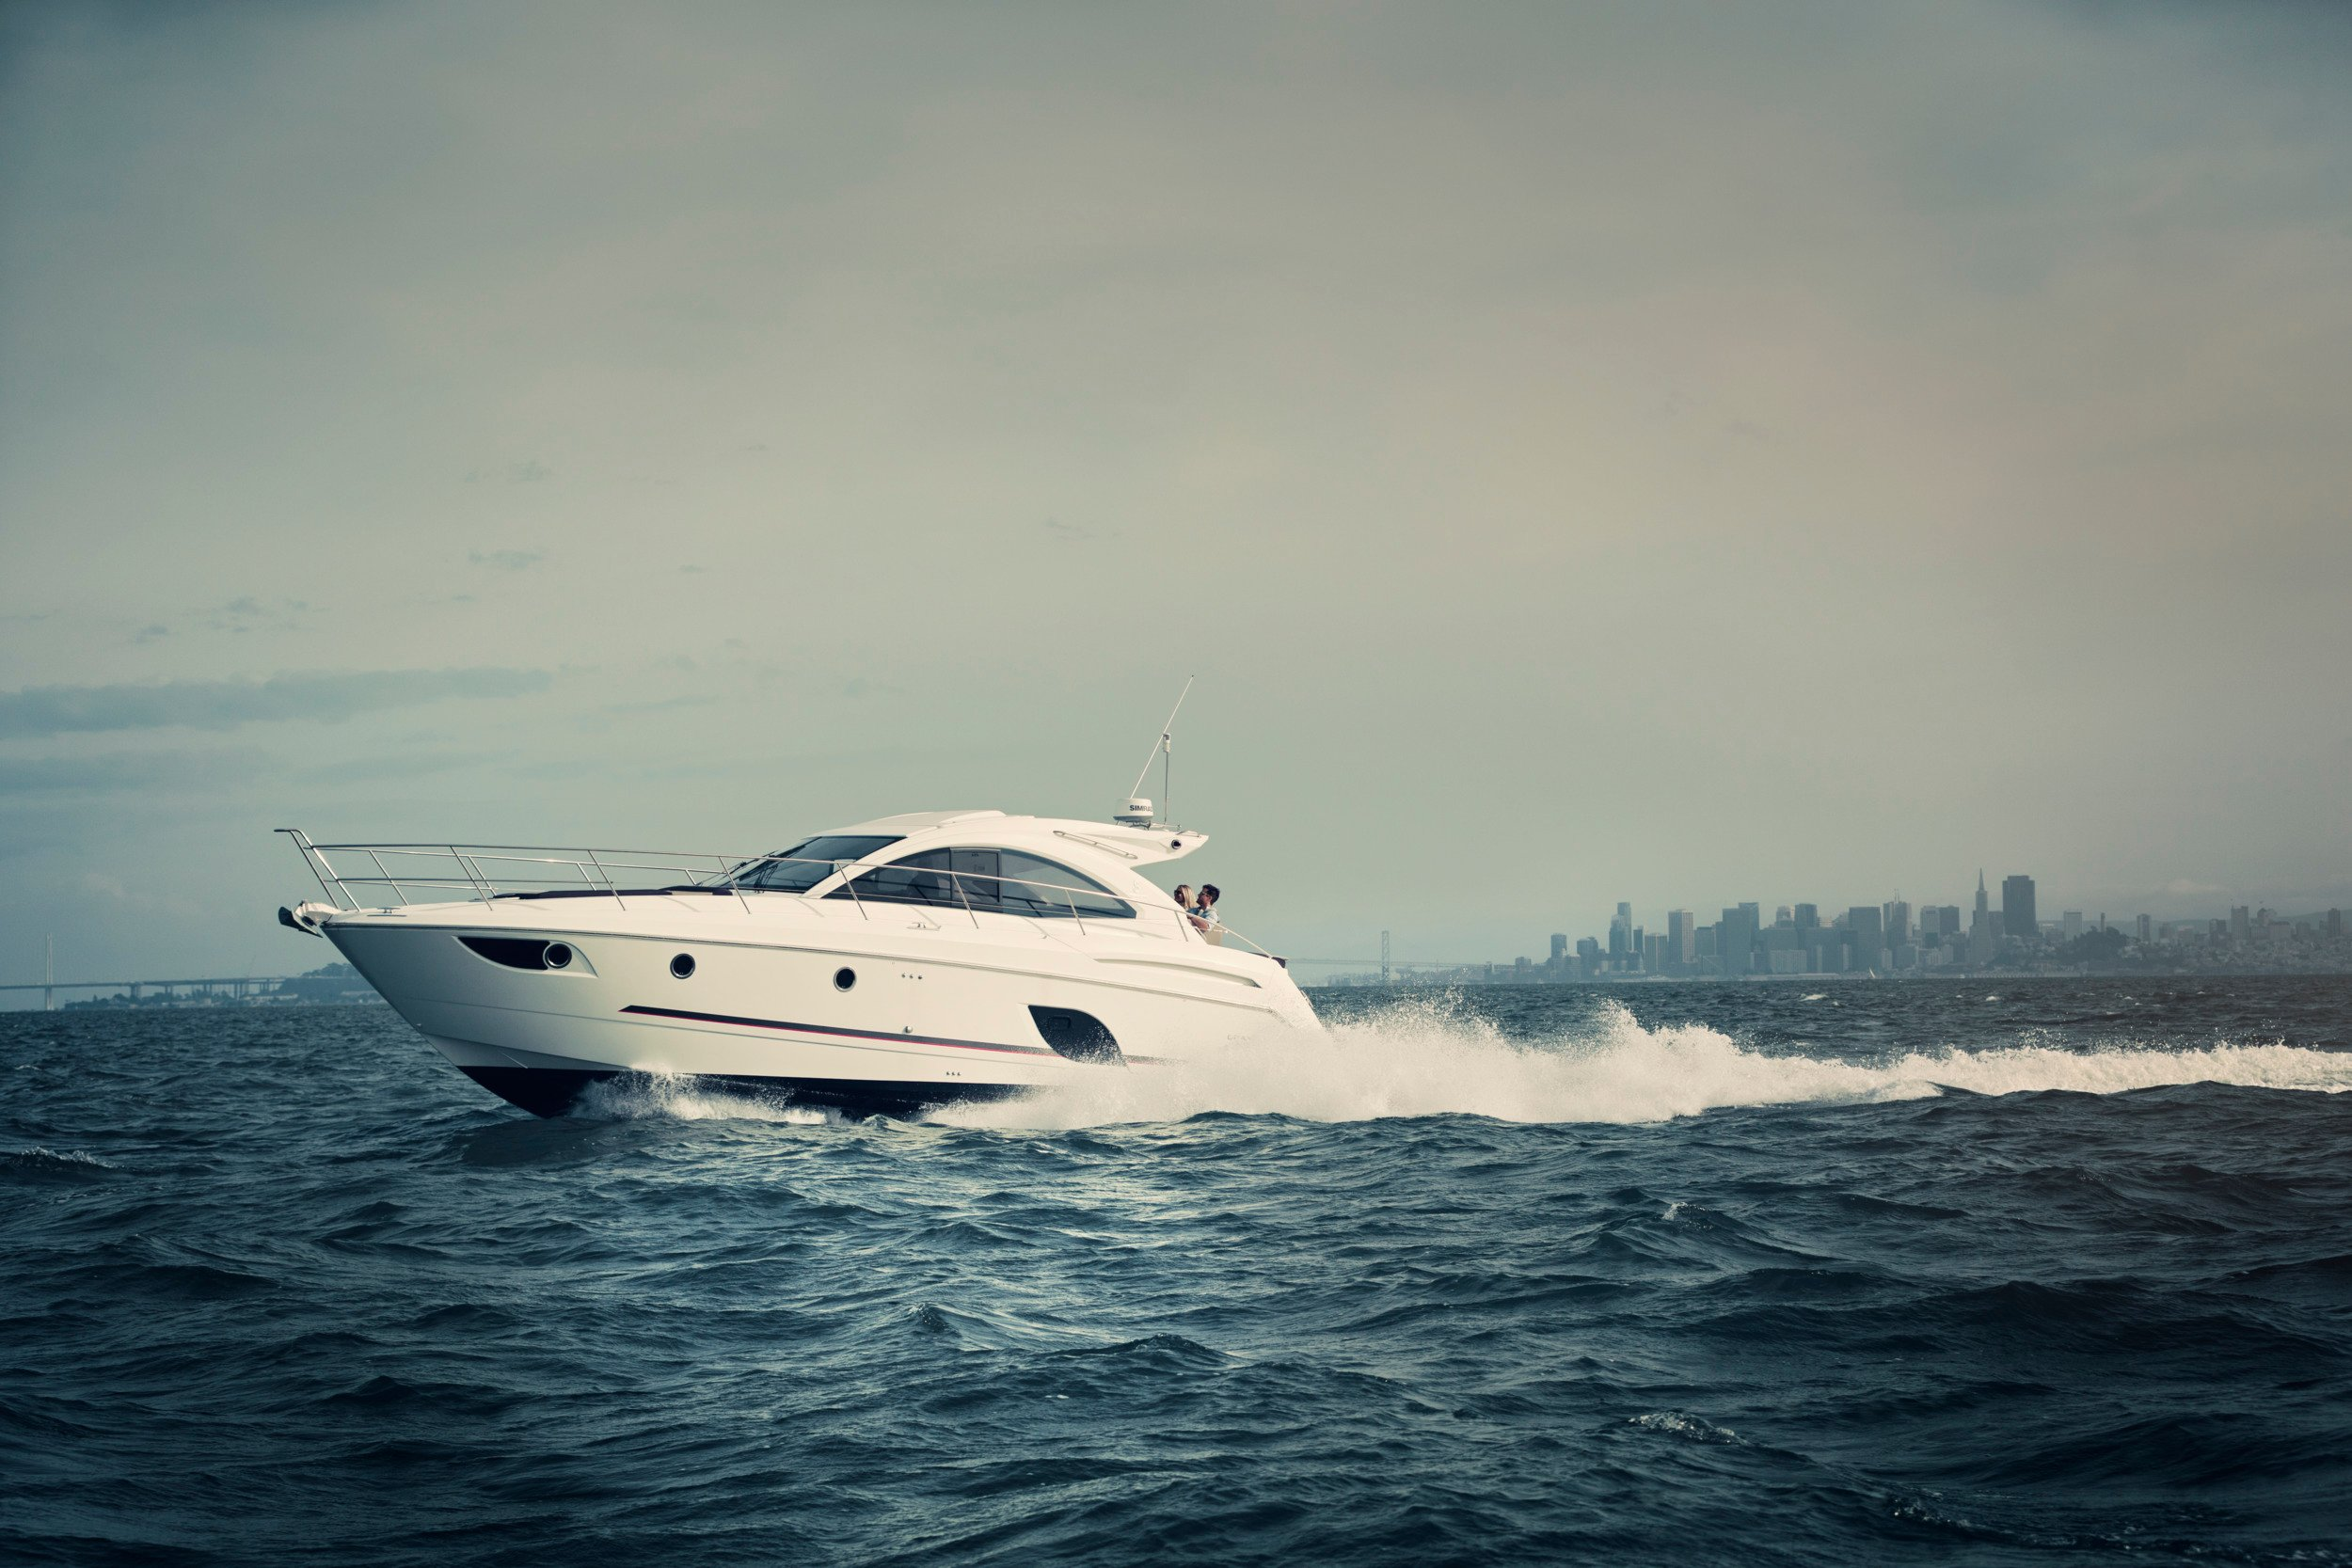 ᐅ Marine Air Conditioners - for your Yacht or Boat | Dometic